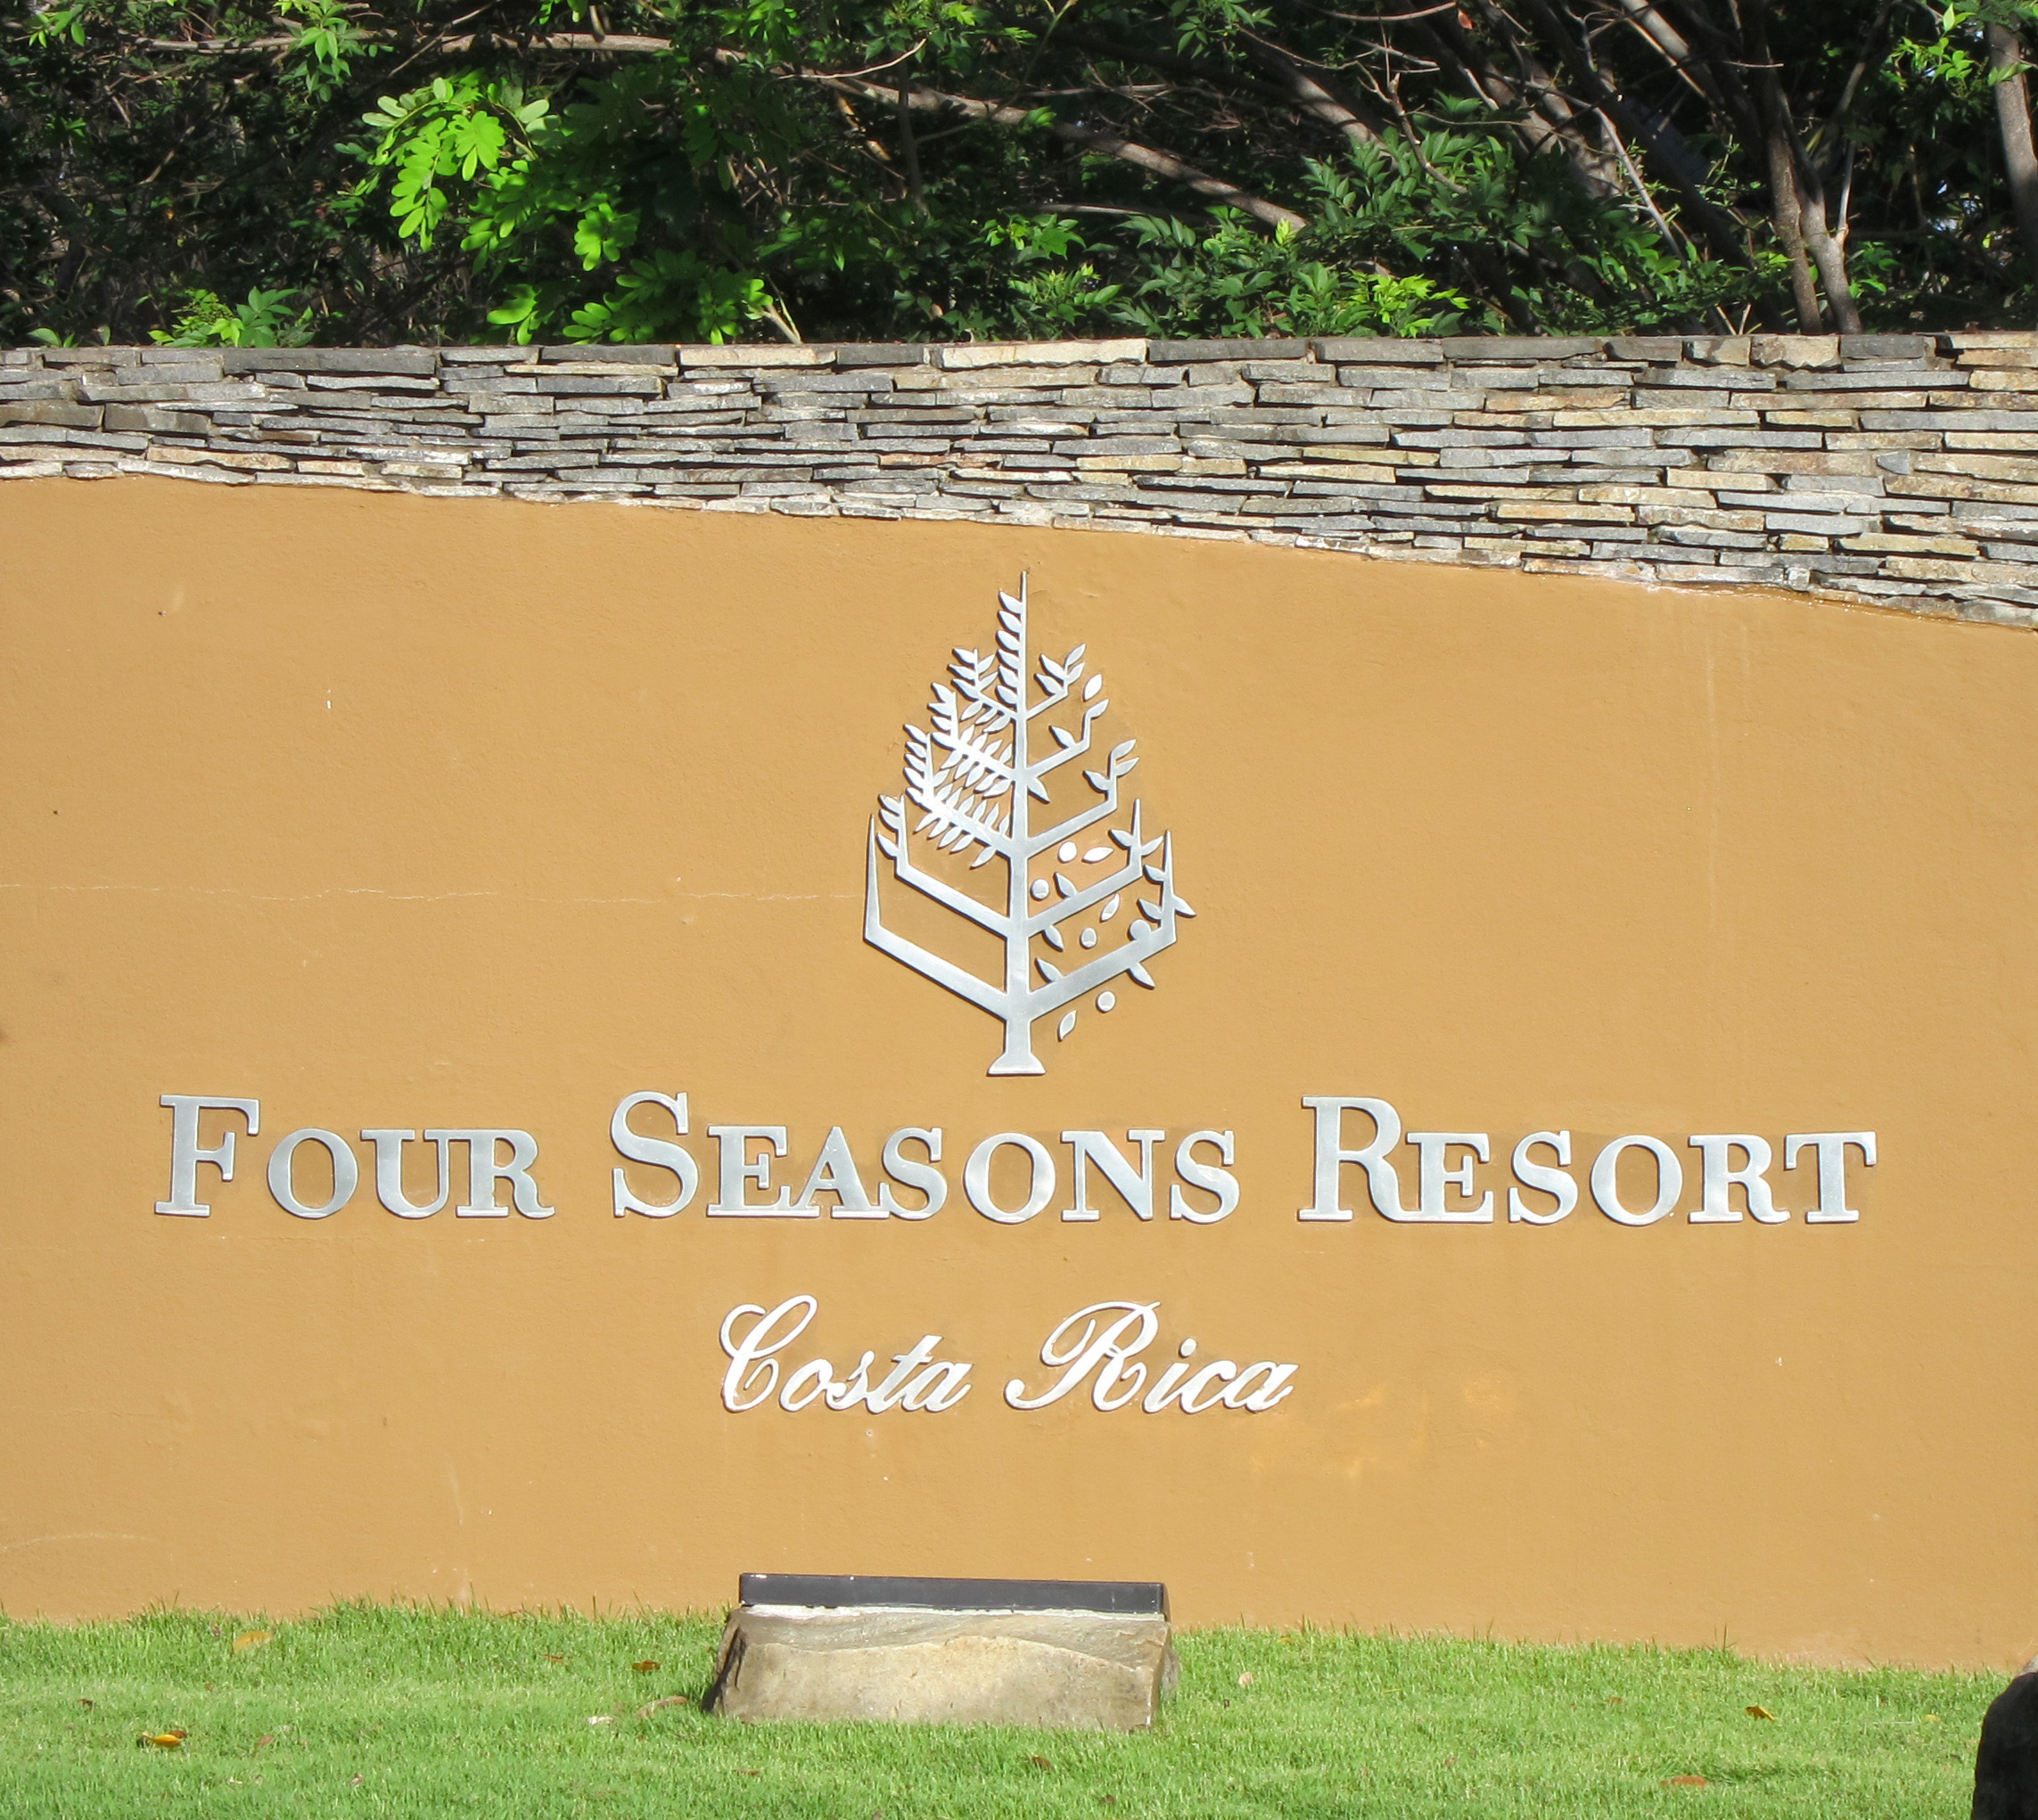 Four Seasons Resort.jpg